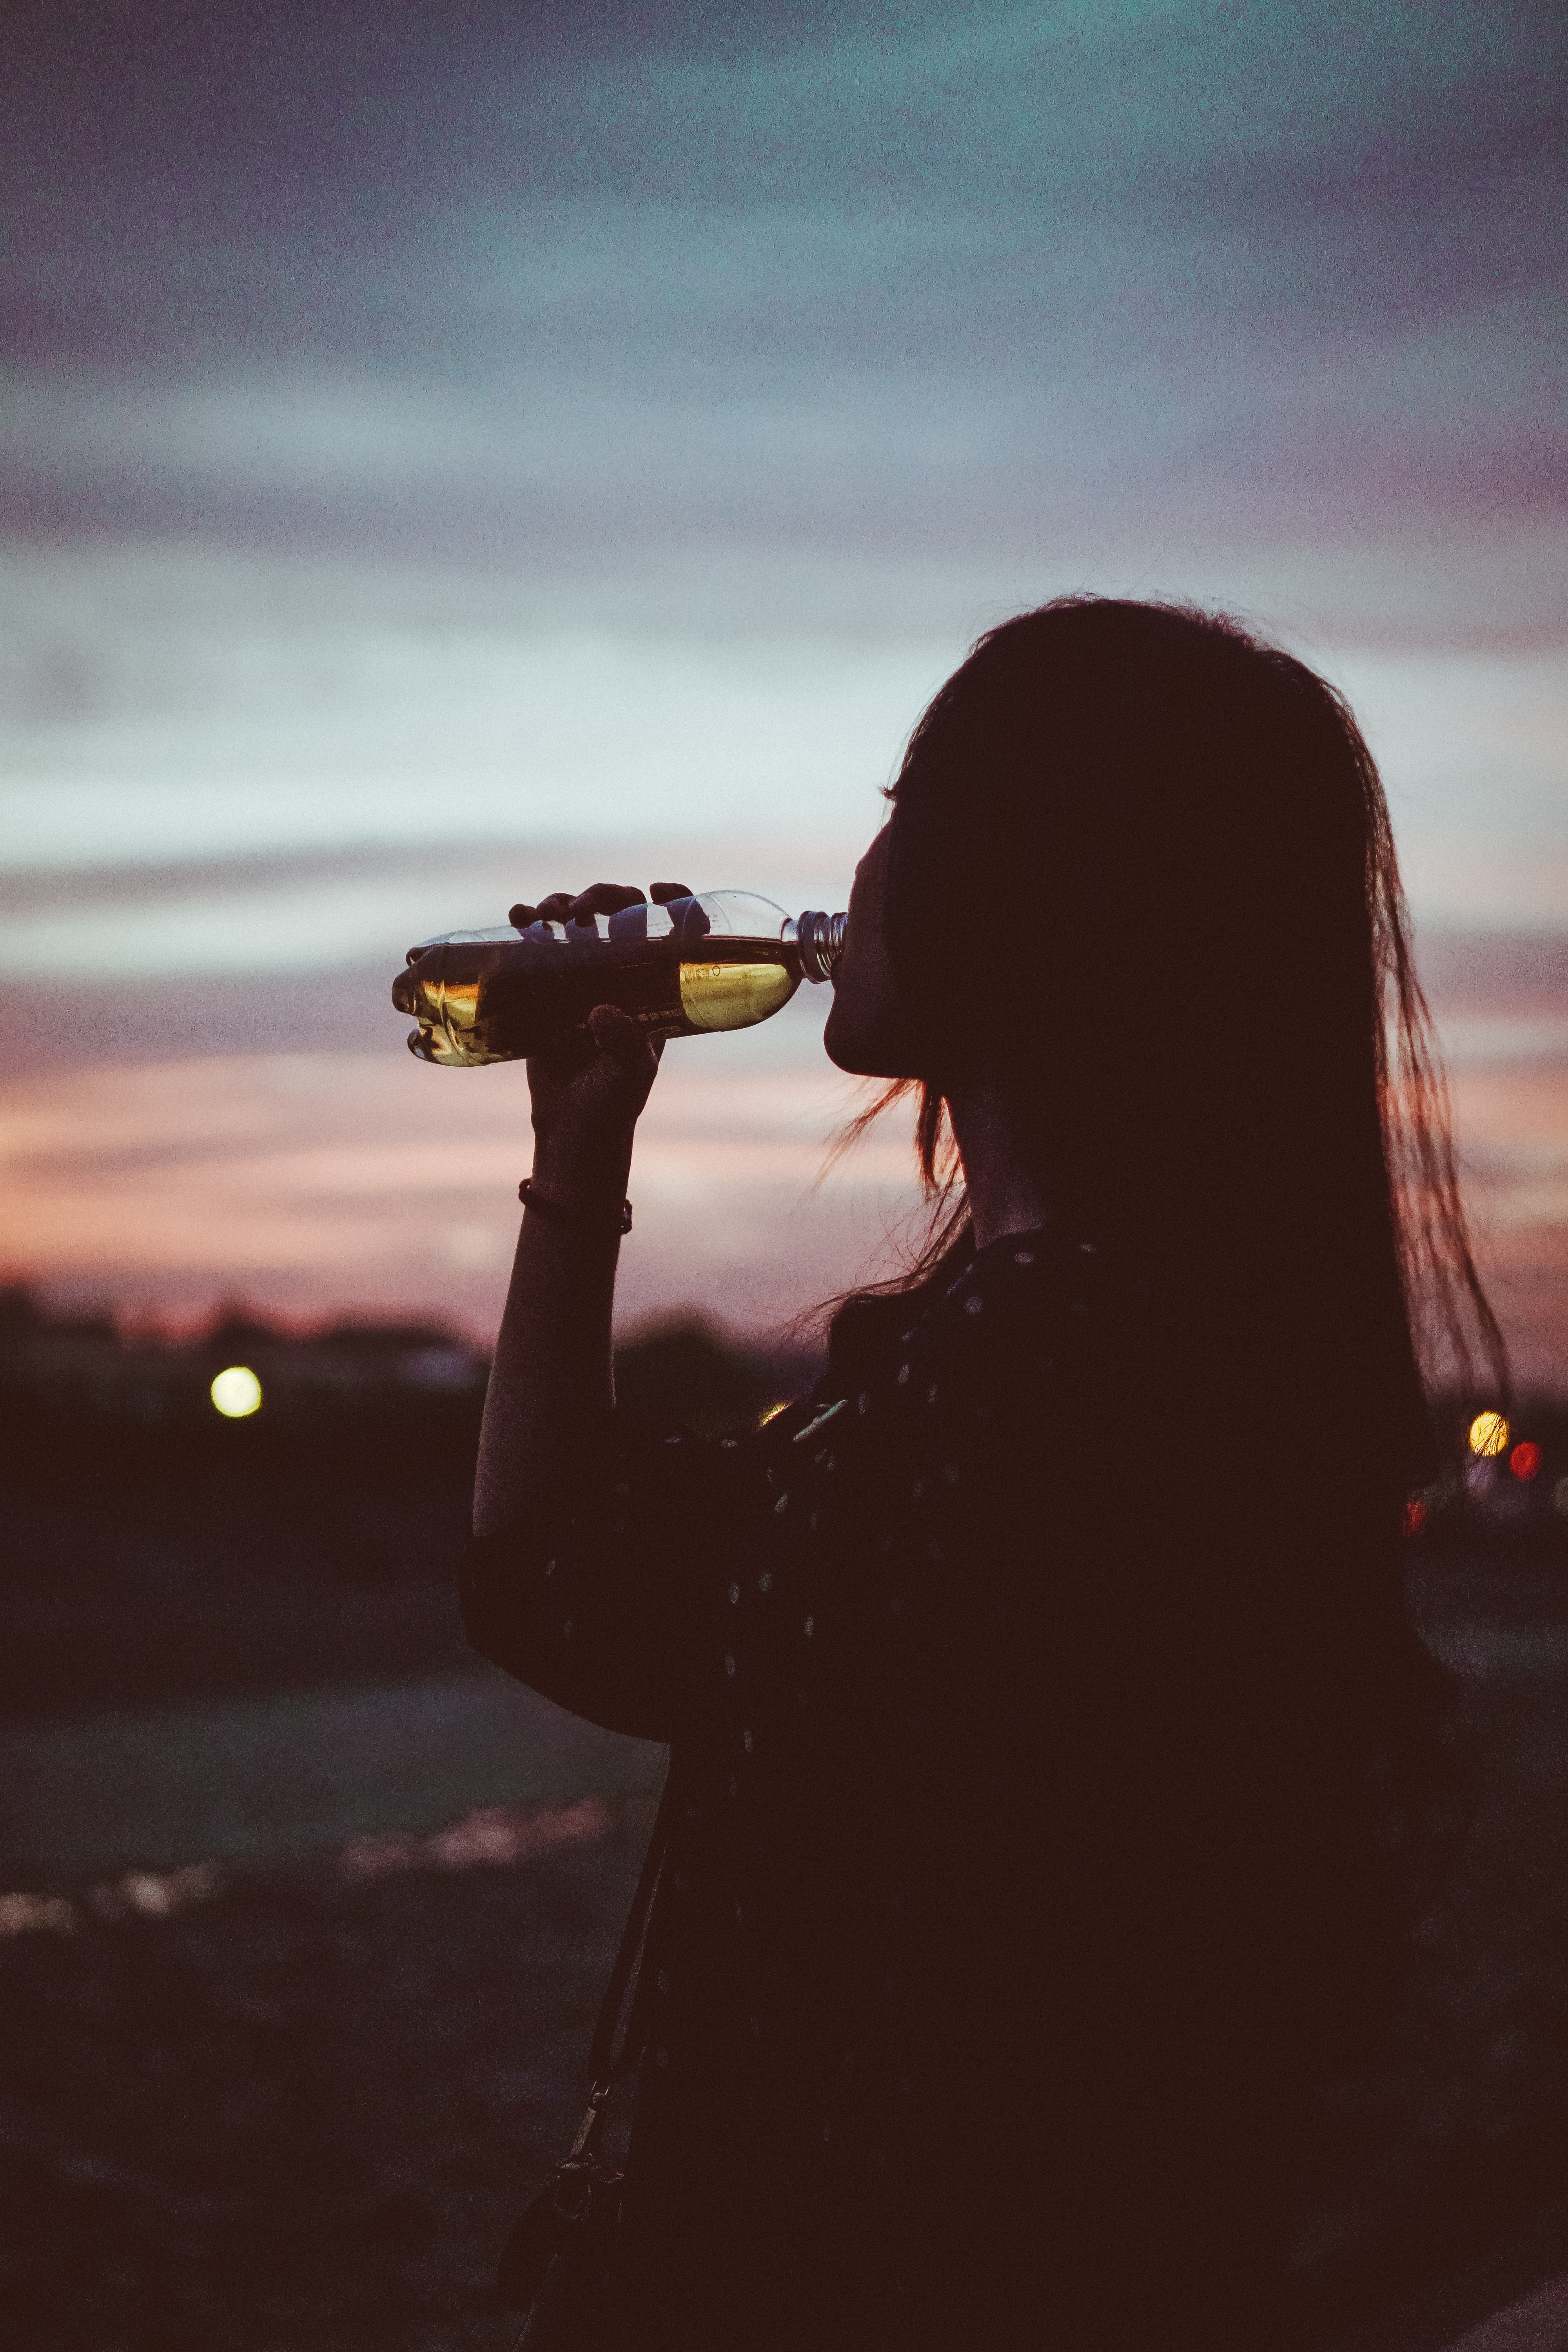 silhouette photo of woman drinking water